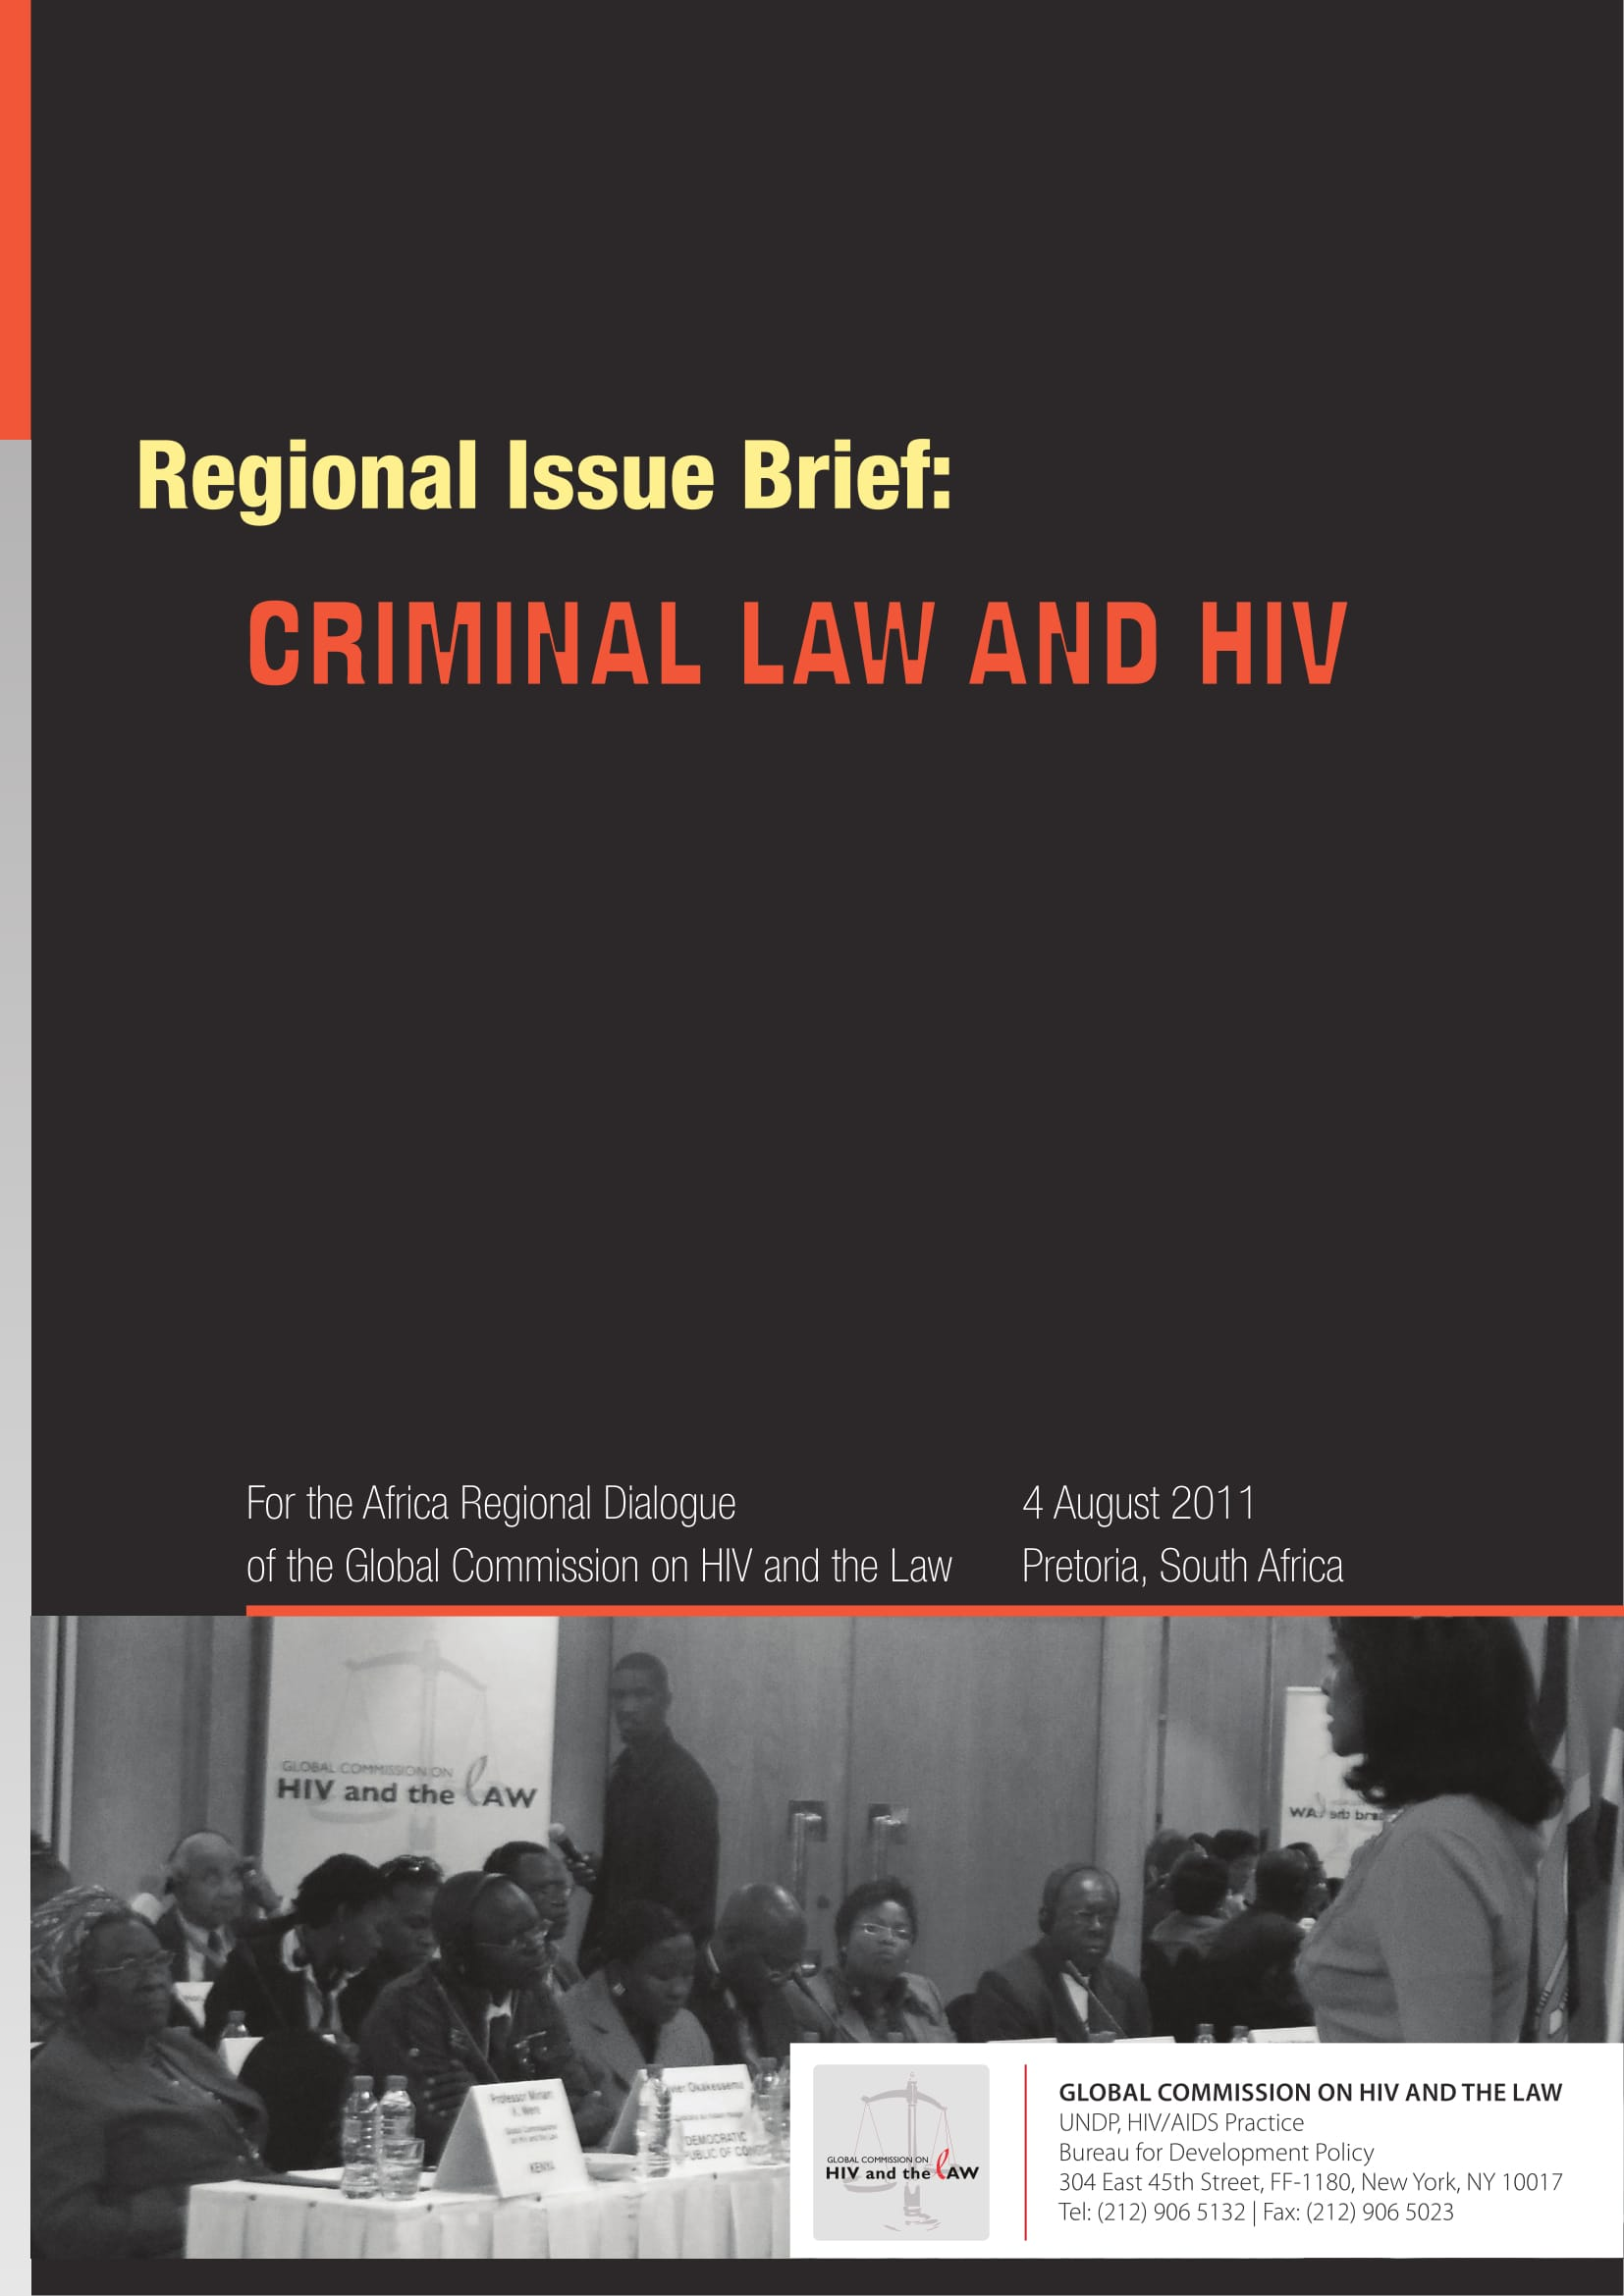 Regional Issue Brief: Criminal Law and HIV